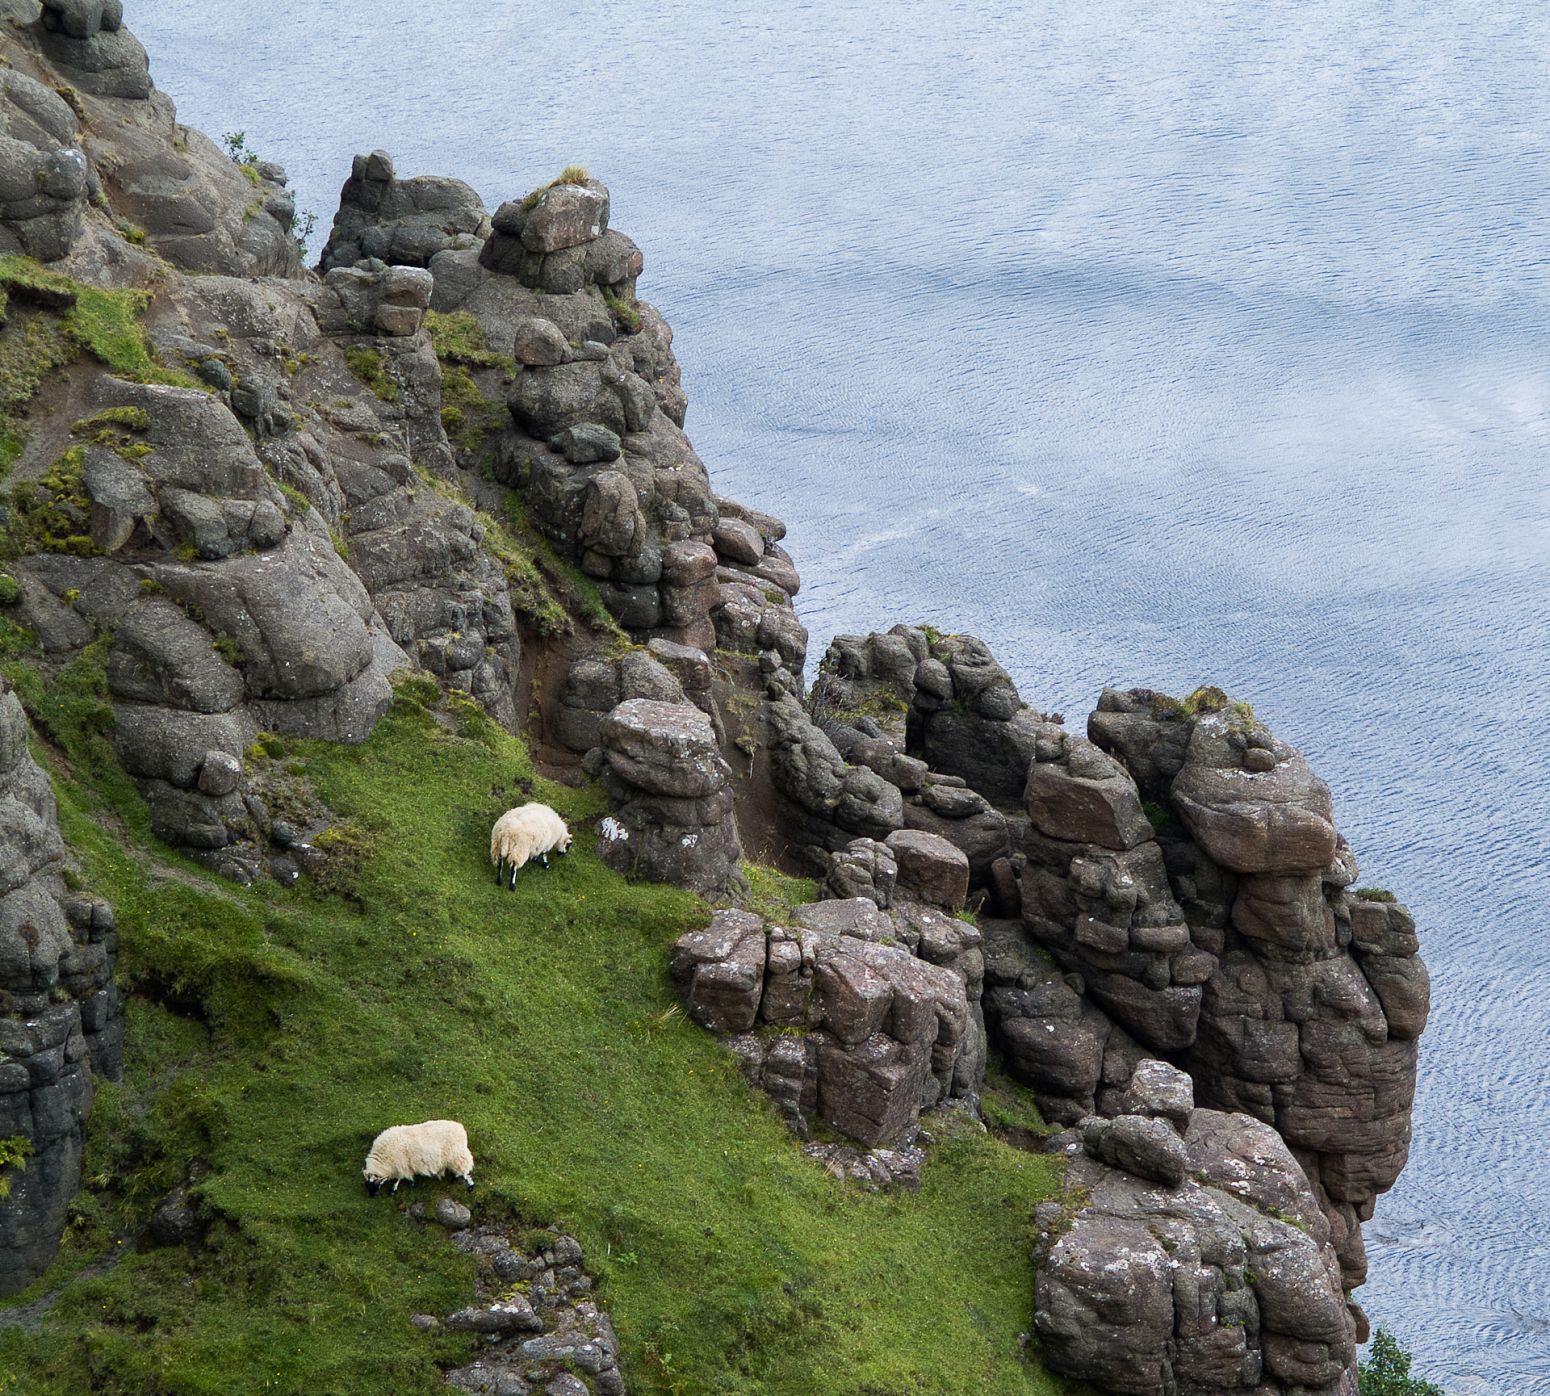 Sheeps on a cliff on Isle of Skye, Scotland